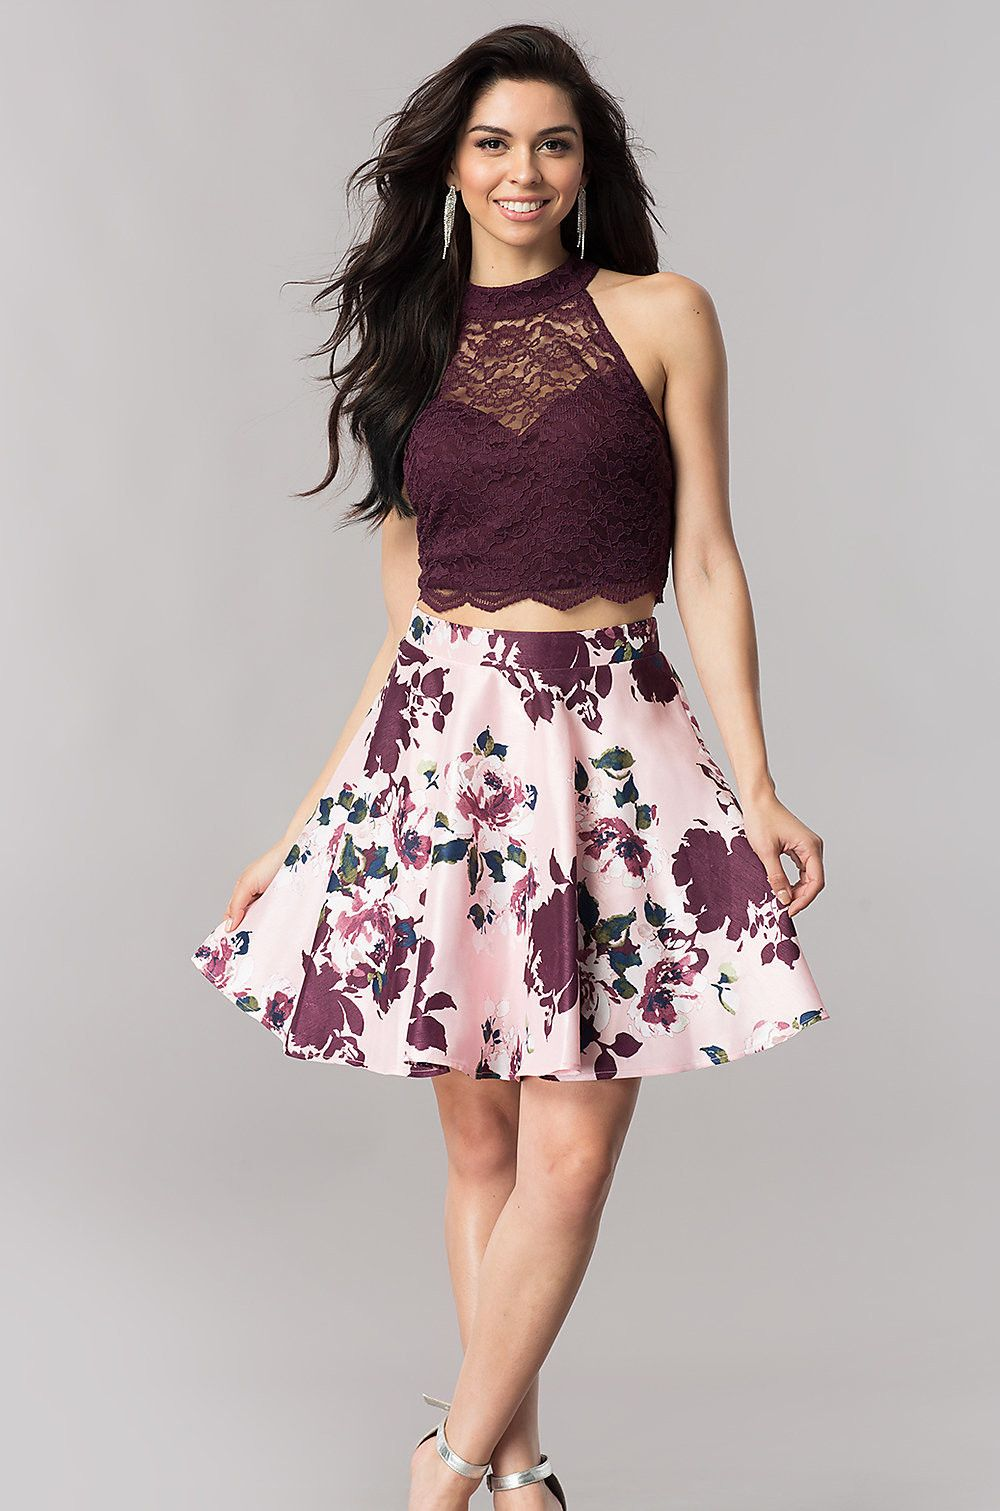 Short Two Piece Homecoming Dress With Print Skirt Two Piece Homecoming Dress Homecoming Dresses Short Black Prom Dress Short [ 1511 x 1000 Pixel ]